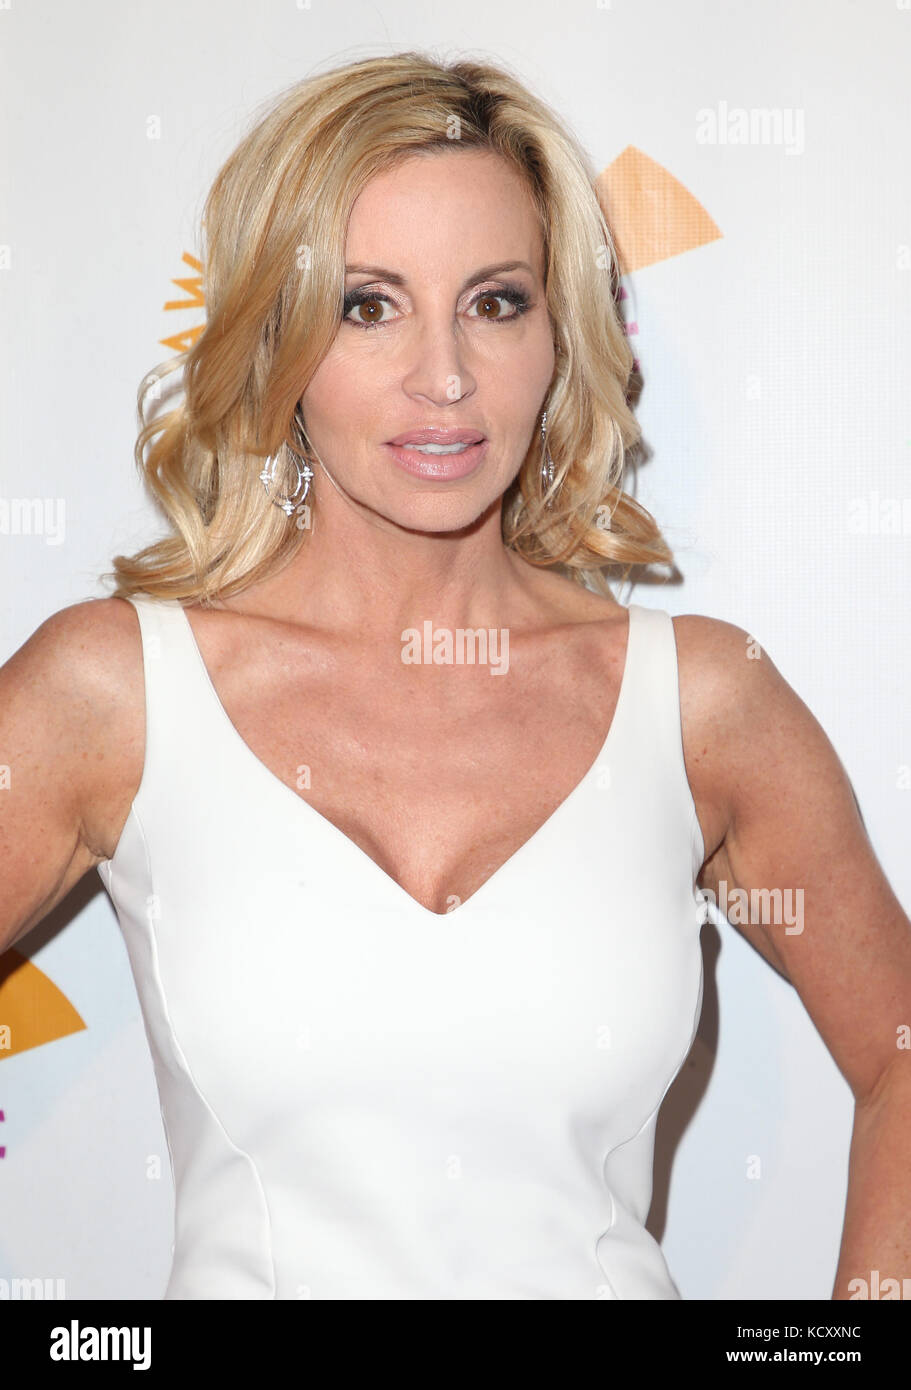 Camille Grammer nude (91 images) Video, Twitter, bra